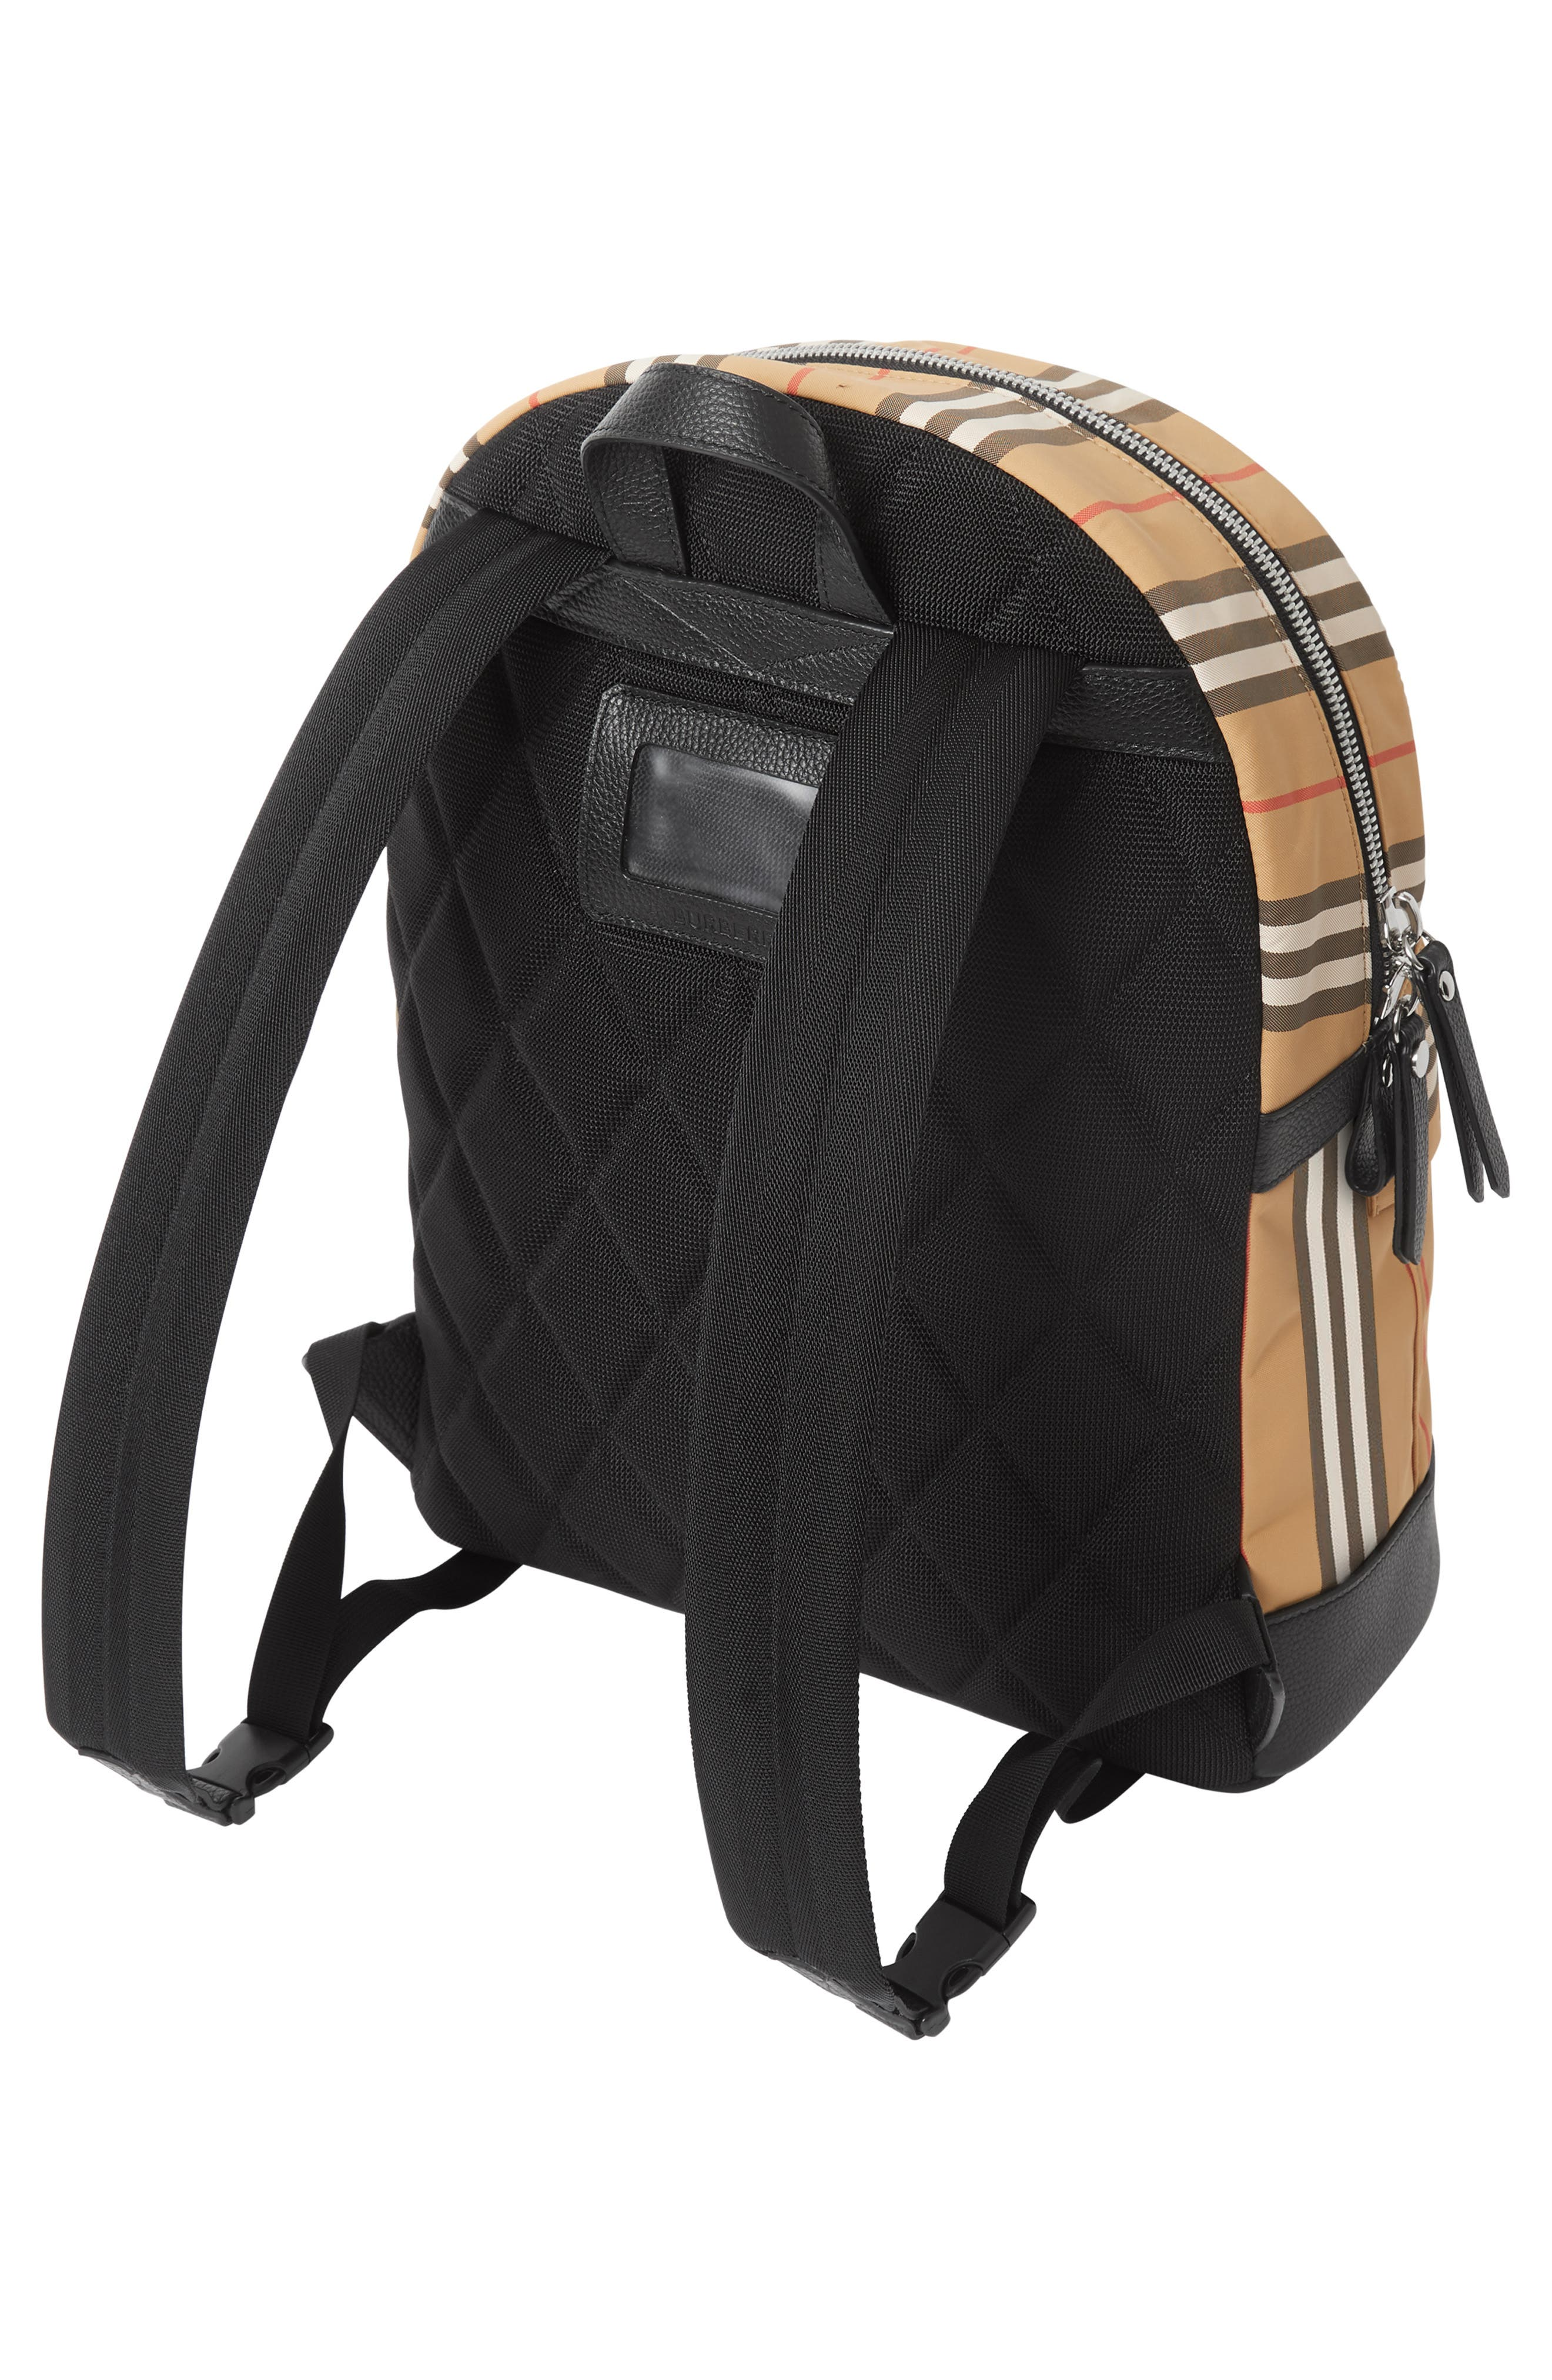 BURBERRY, Nico Archive Stripe Backpack, Alternate thumbnail 6, color, ARCHIVE BEIGE